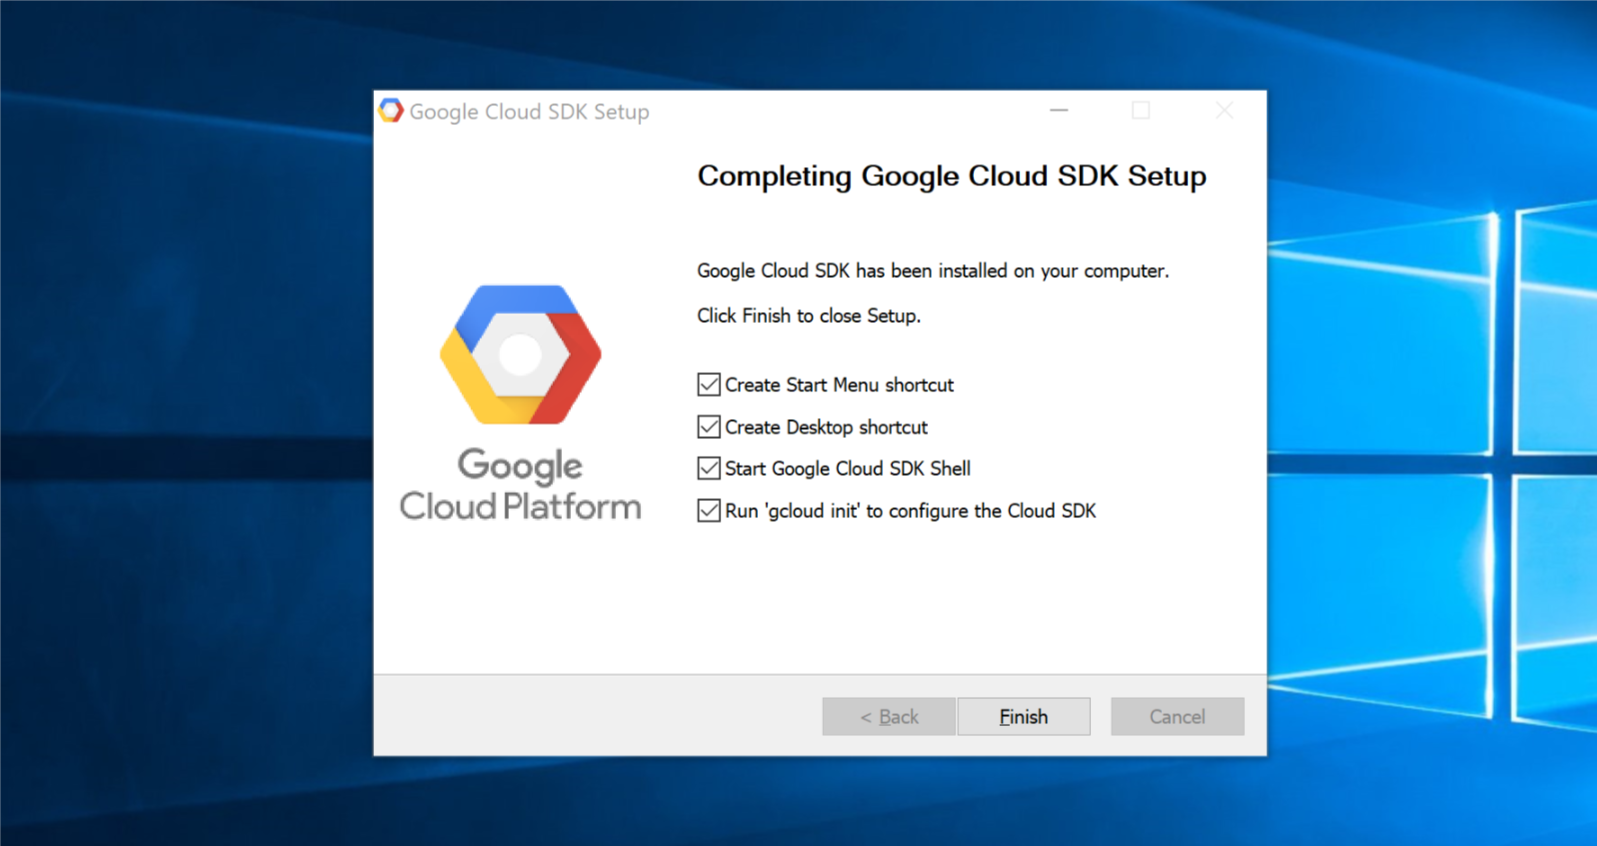 The Windows guide to setting up a Google Cloud instance for